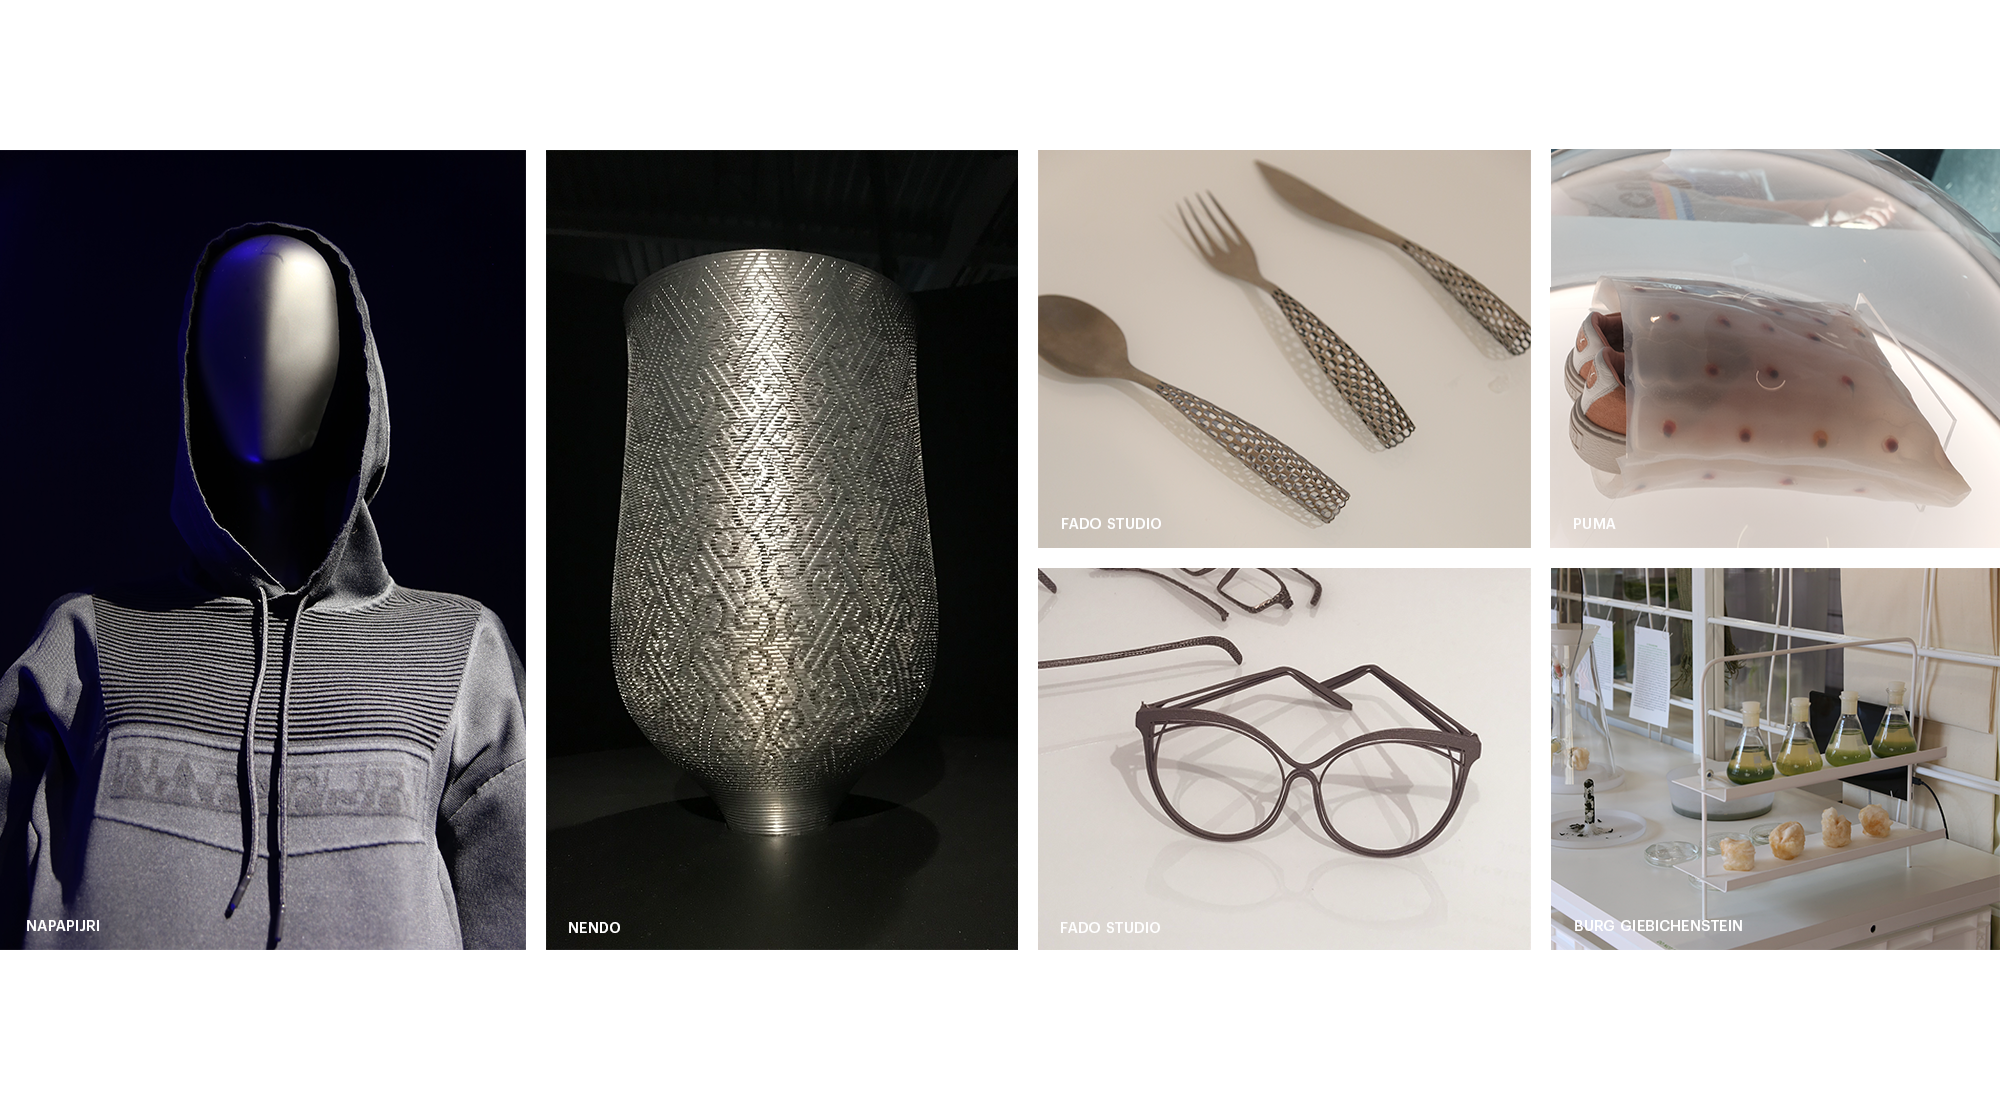 Image Collage Milan Design Week 2018 showing clothing, mannequin, mesh, cup, knife, fork, spoon, glasses, shoes, bag, bottles, green liquid